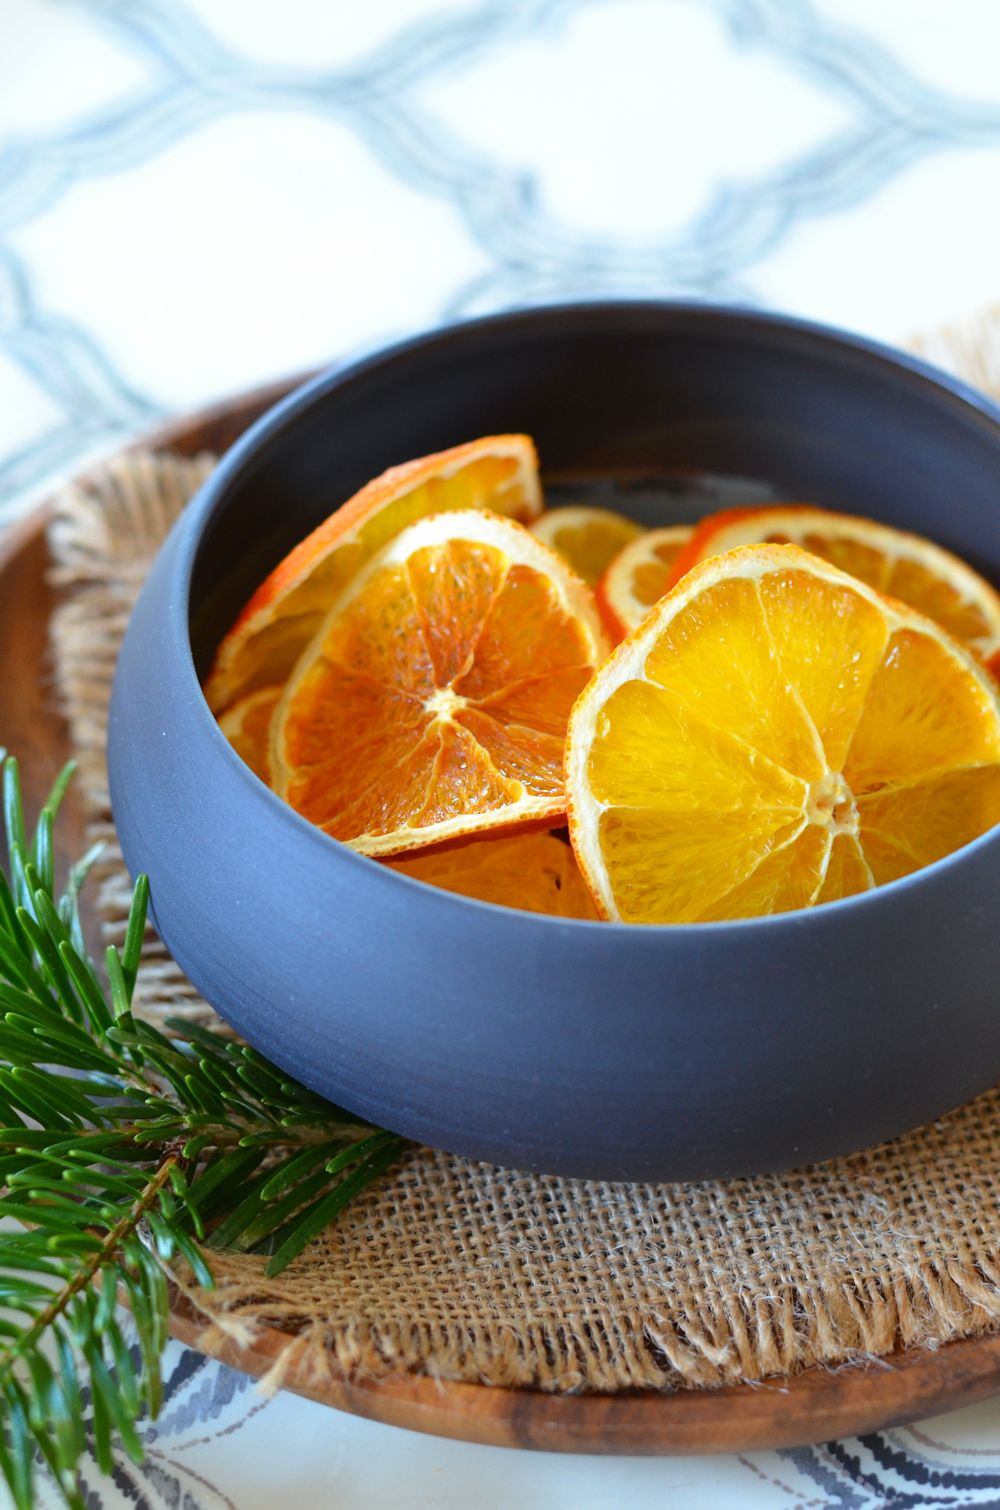 Oranges sliced dried in the oven {decoration or dining}